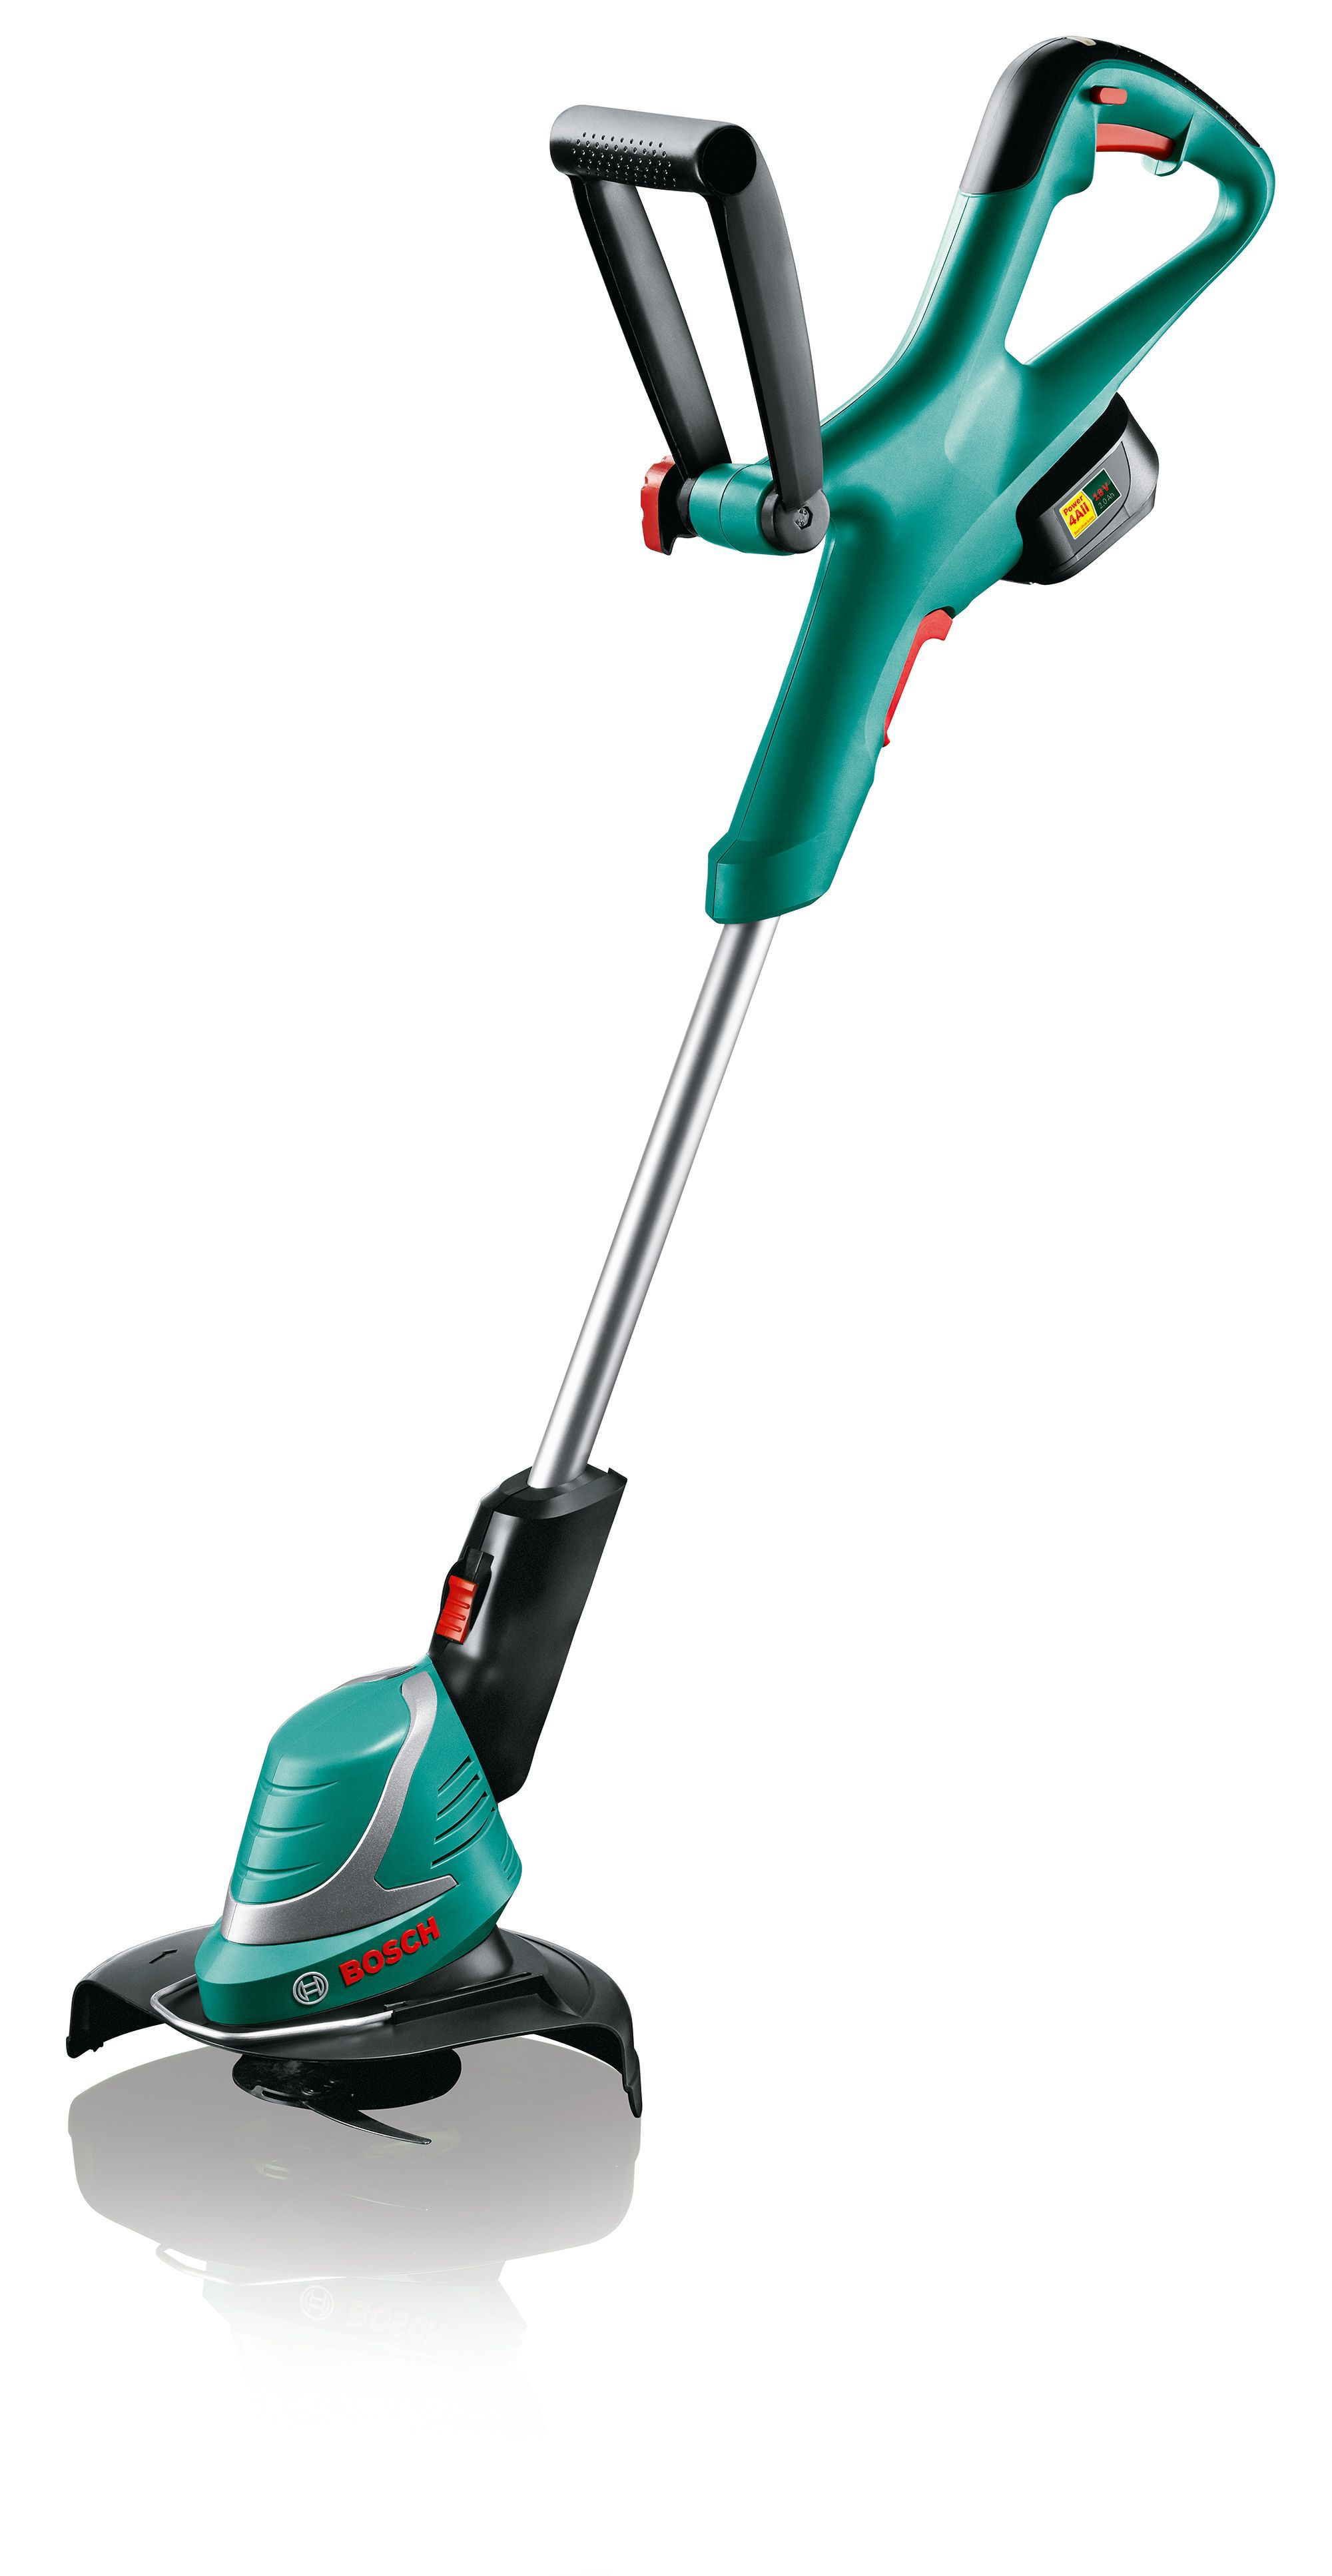 Bosch Green Art 26-18 Li Electric Cordless Lithium-ion Grass Trimmer